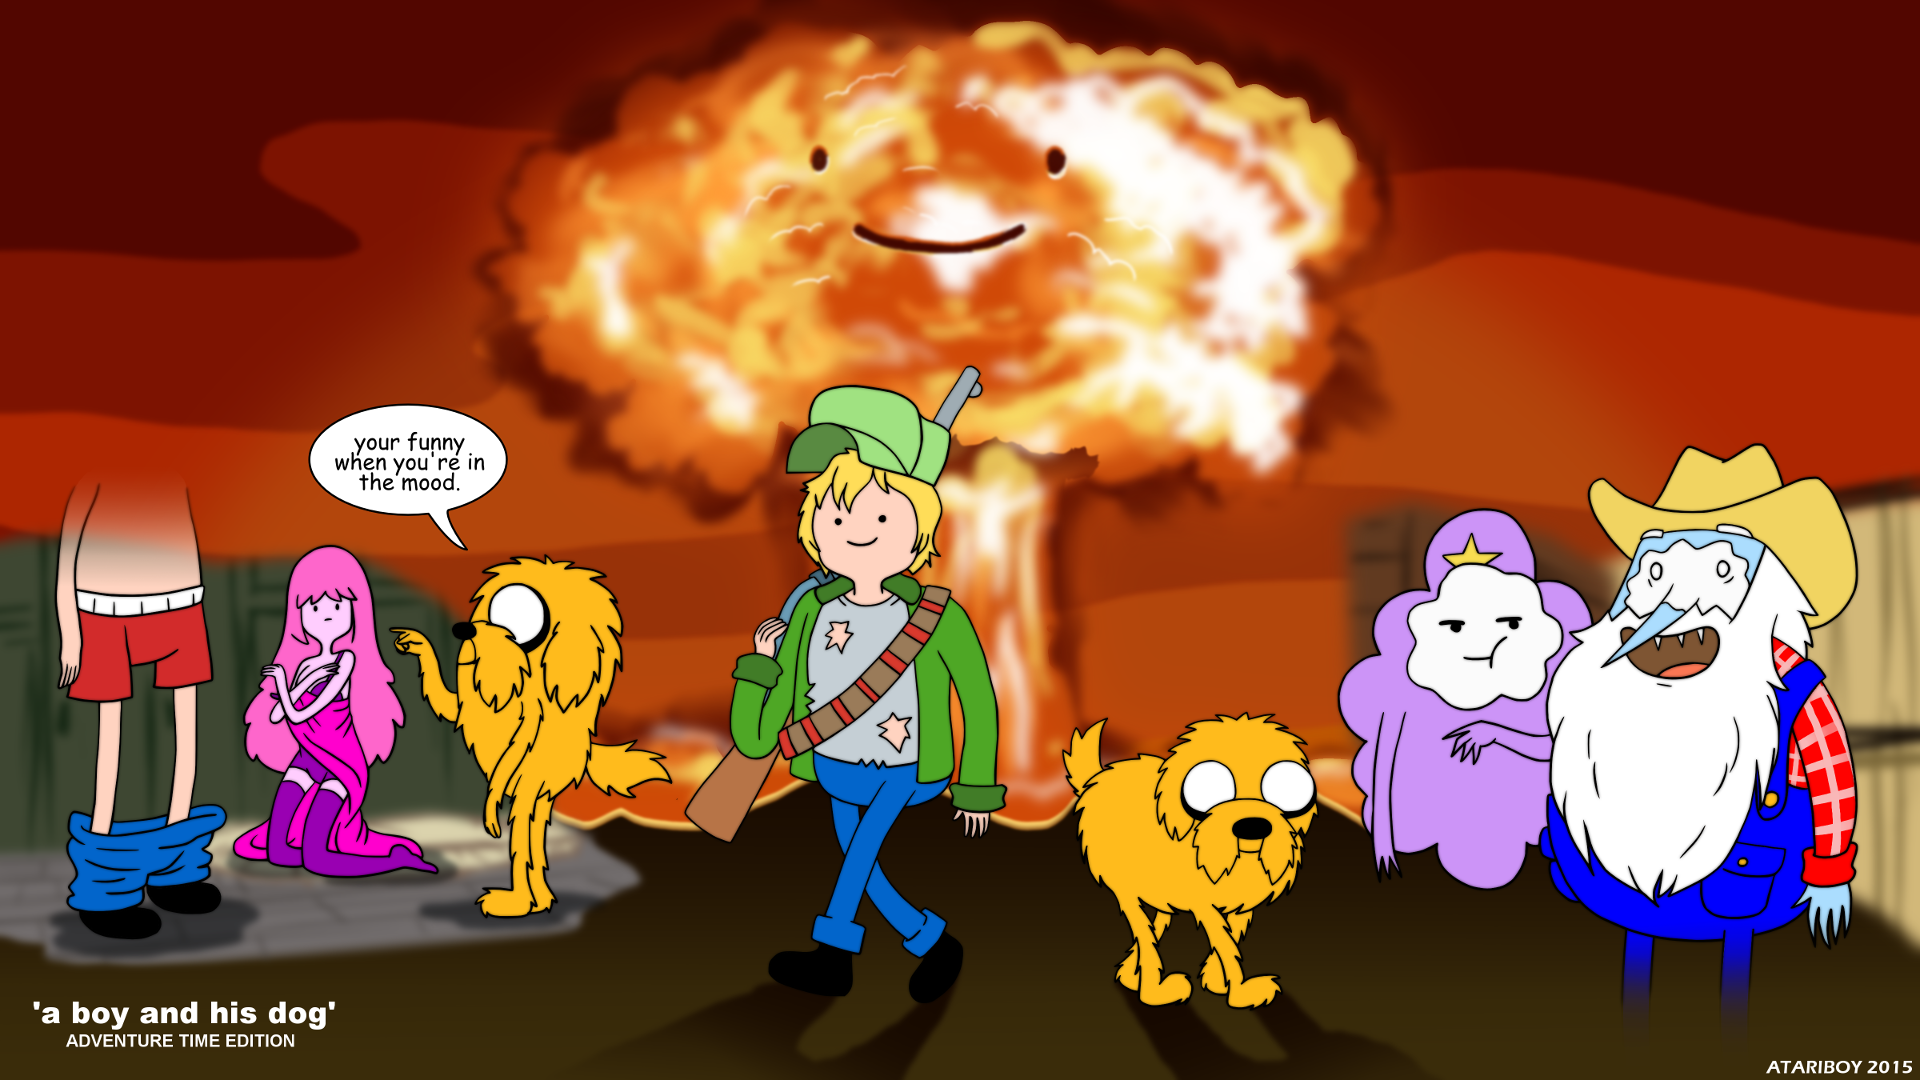 . PlusPng.com Finn And Jake - A Boy And His Dog. by Atariboy2600 - A Boy And His Dog PNG